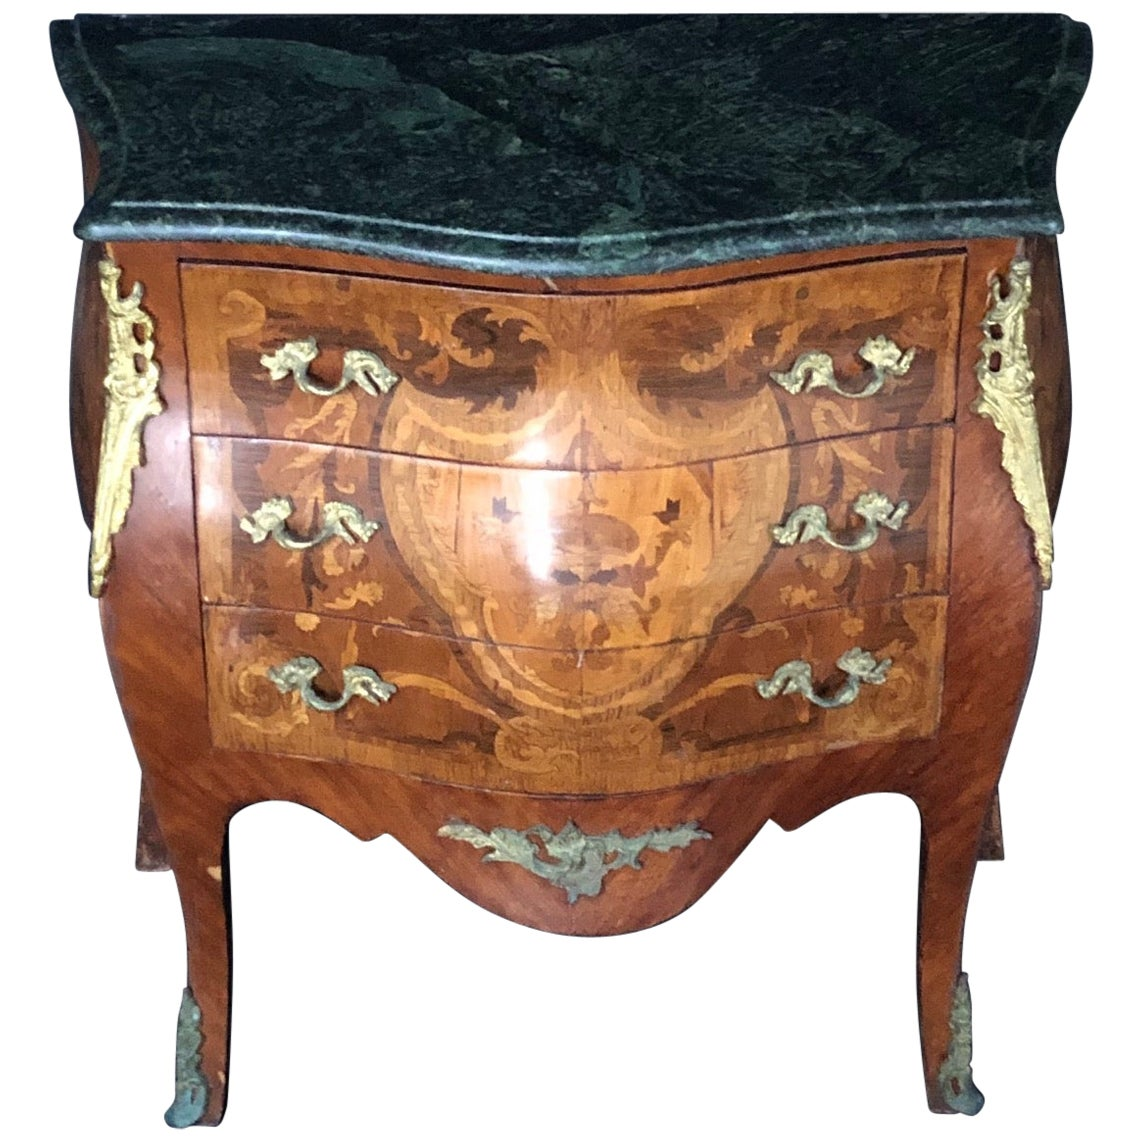 Exquisite French Louis XV Side Table or Nightstand with Dark Marble Top